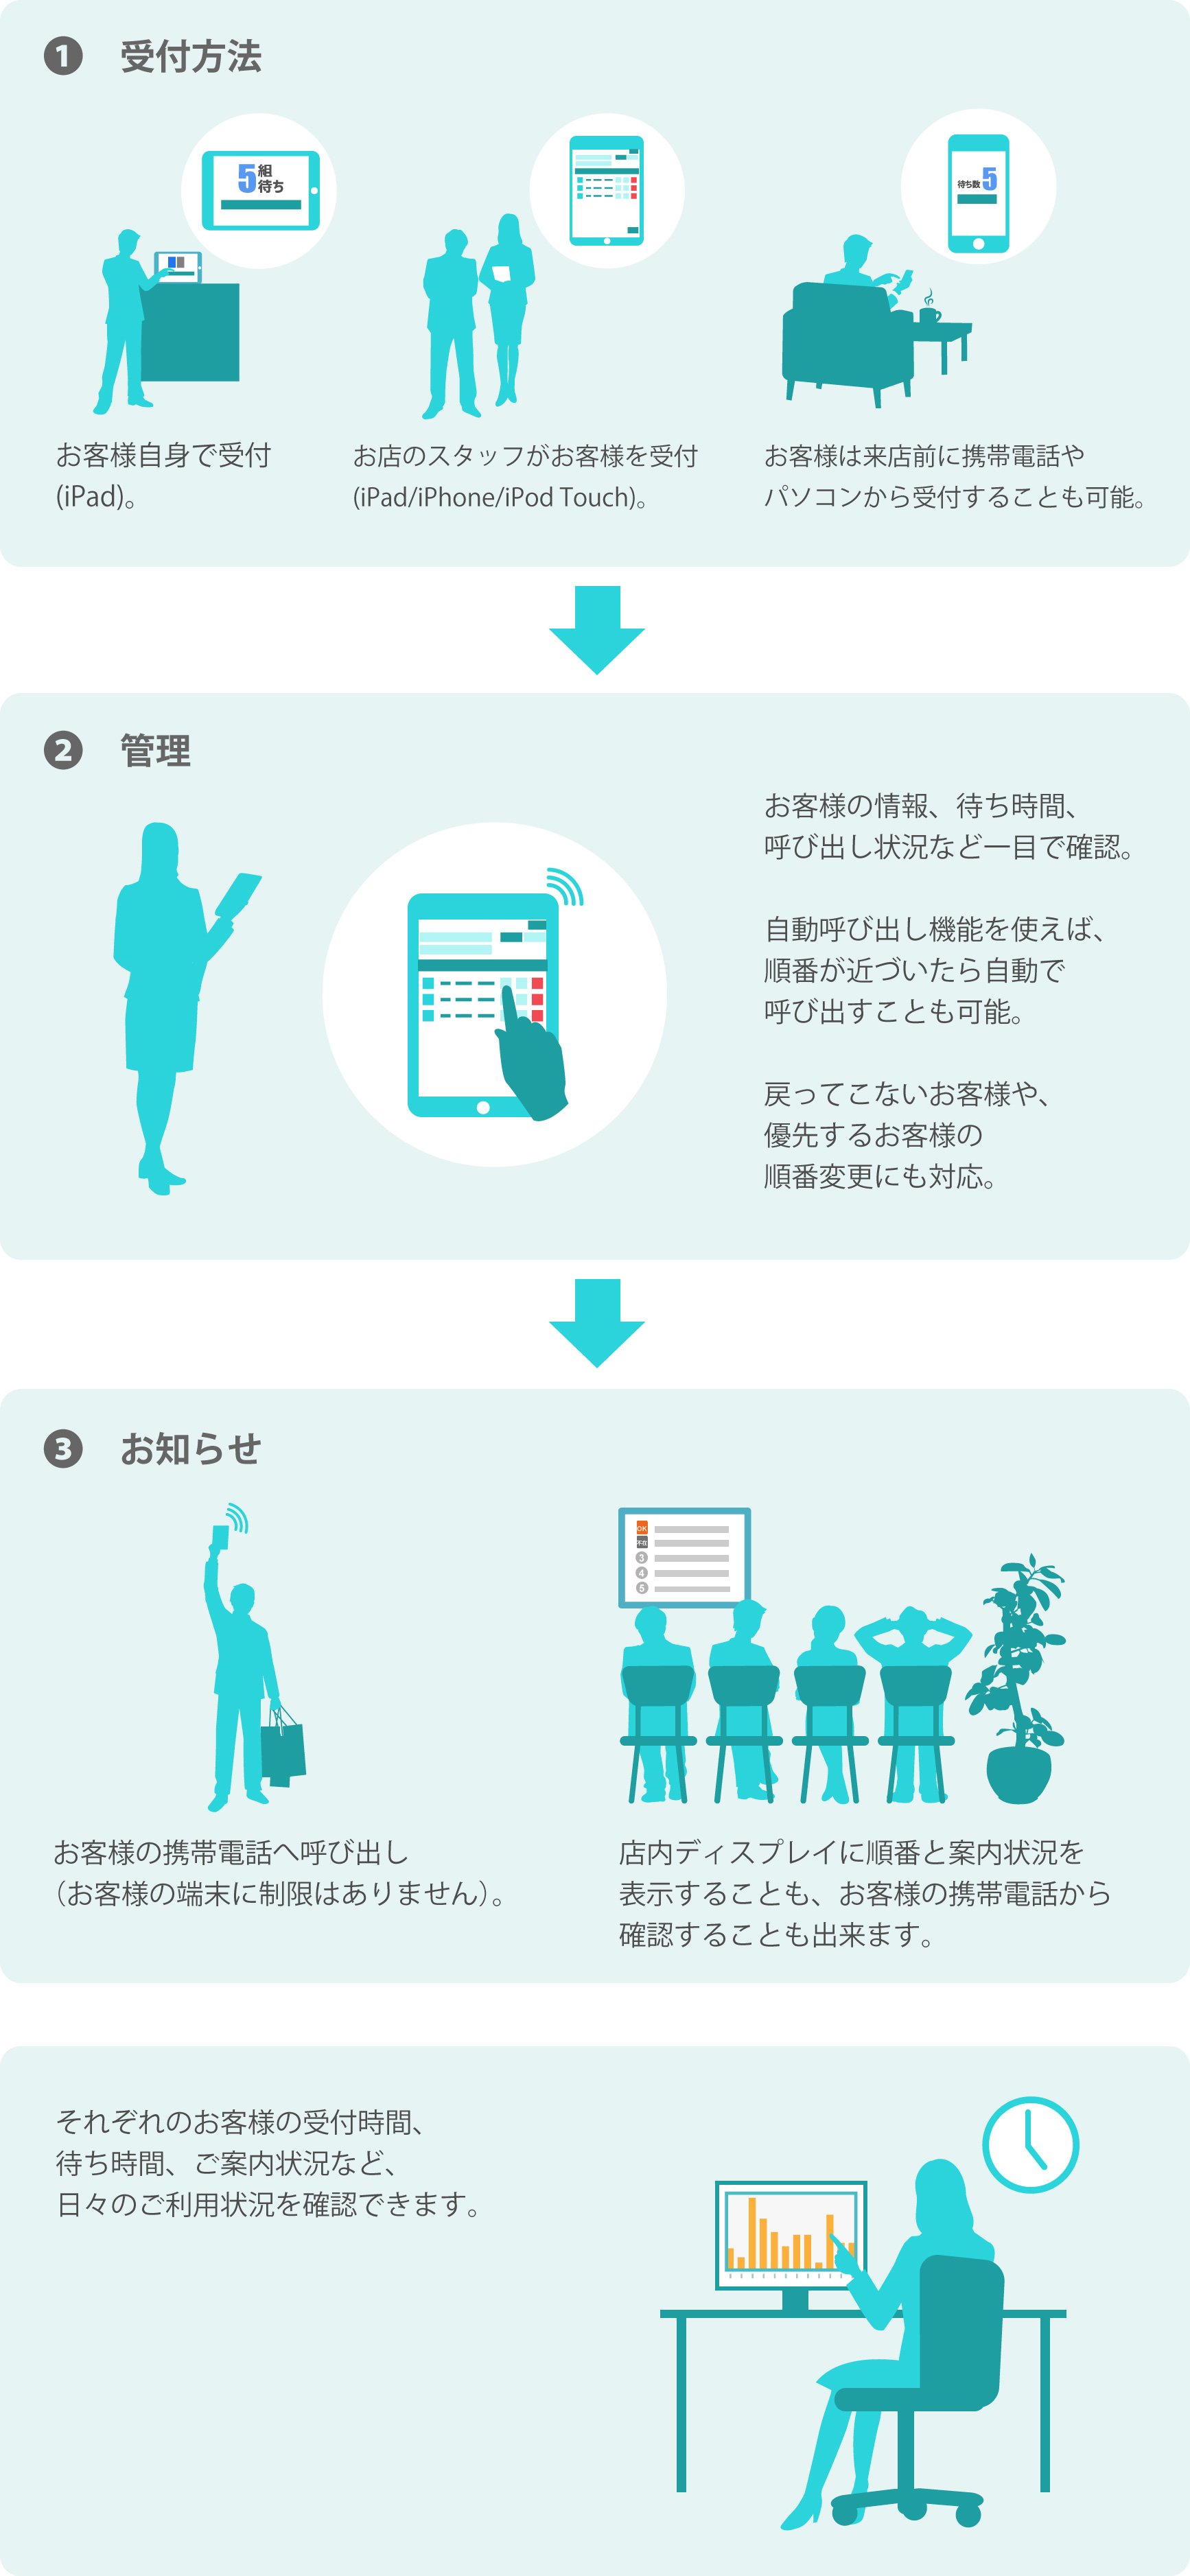 myjunban-use case image 利用方法